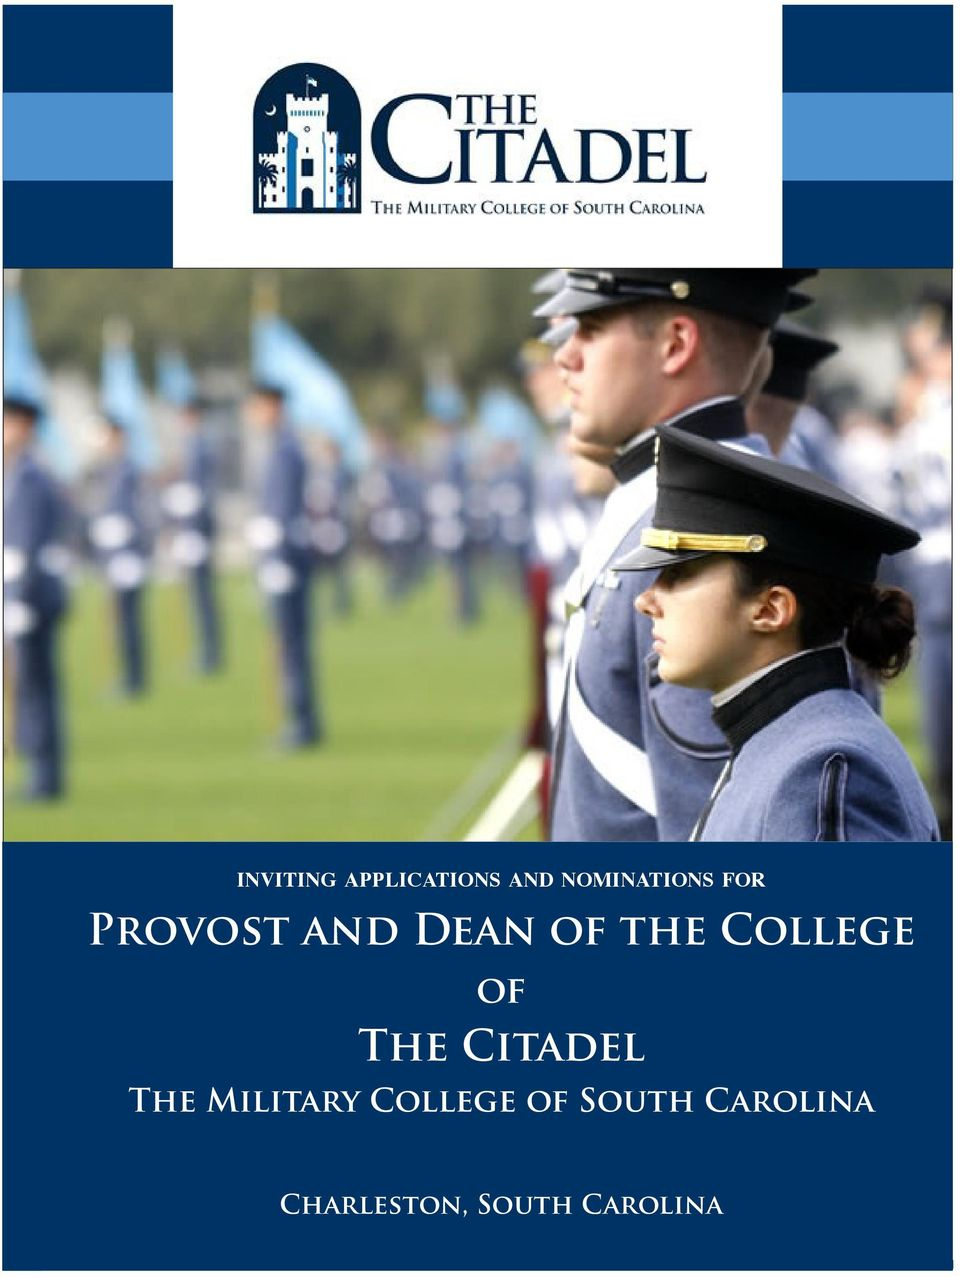 The Citadel The Military College of